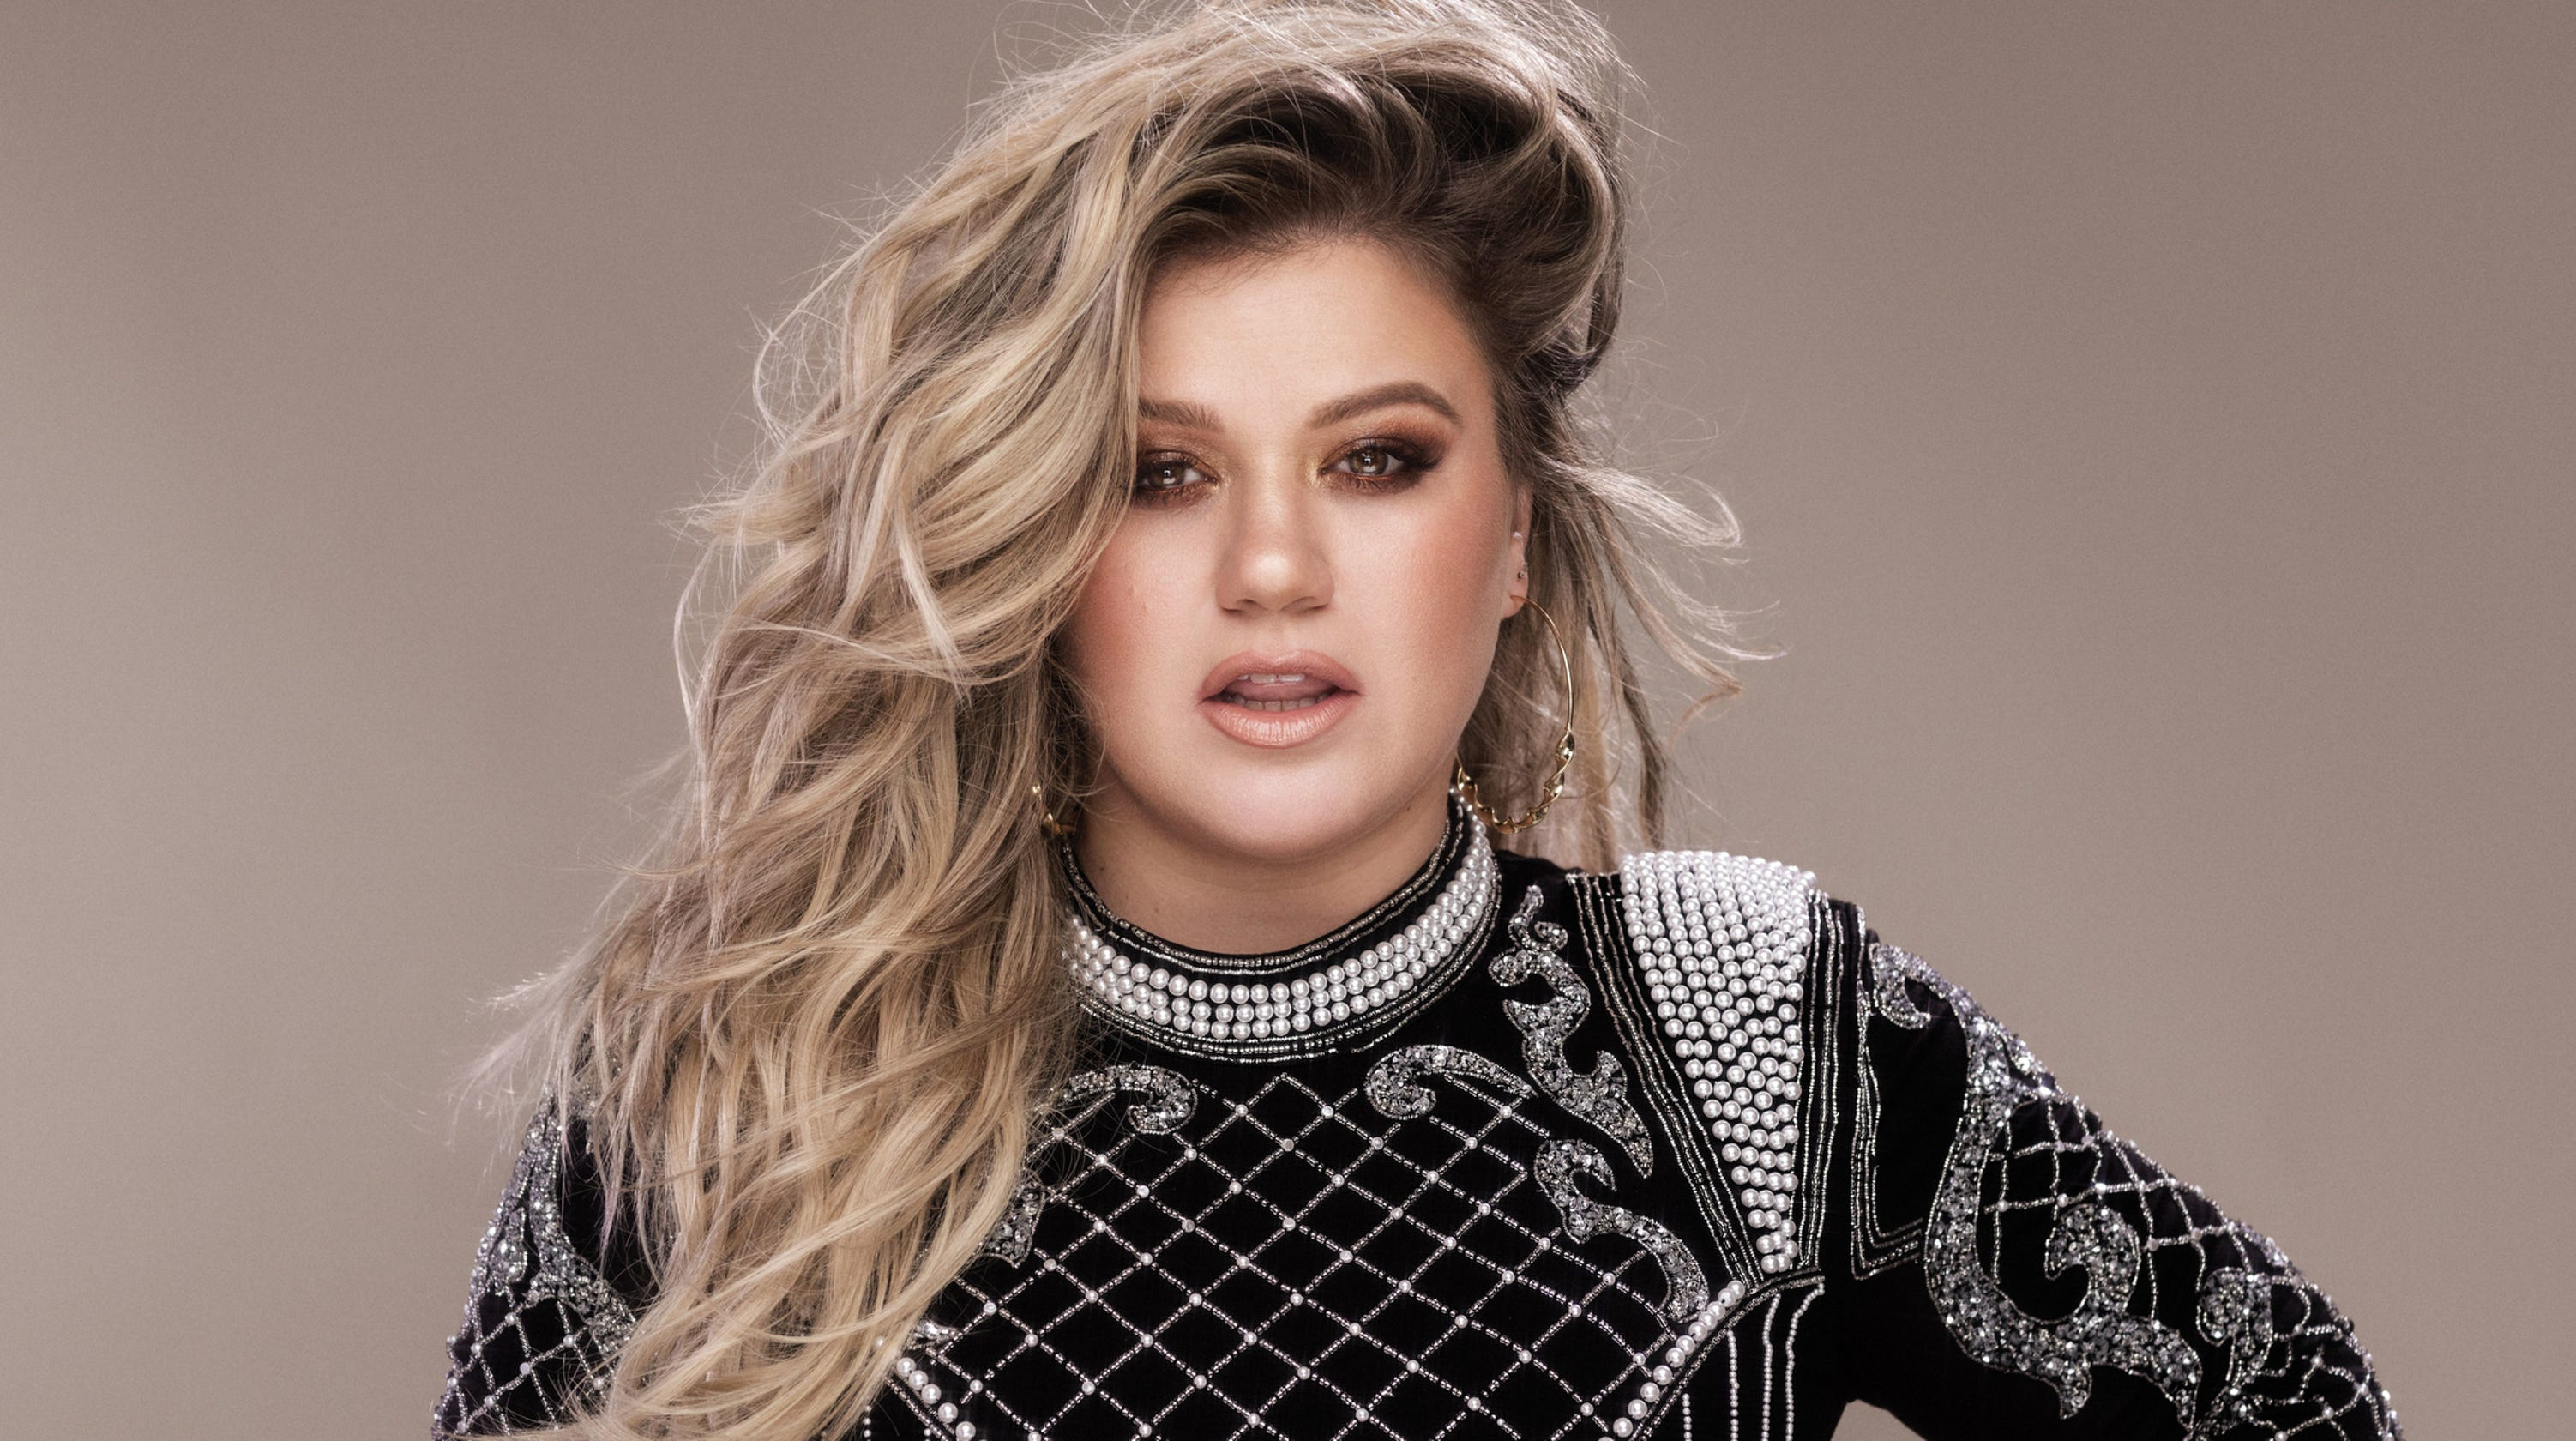 Kelly Clarkson interview: Her 'huge' tour, daytime TV show and honest advice to singers